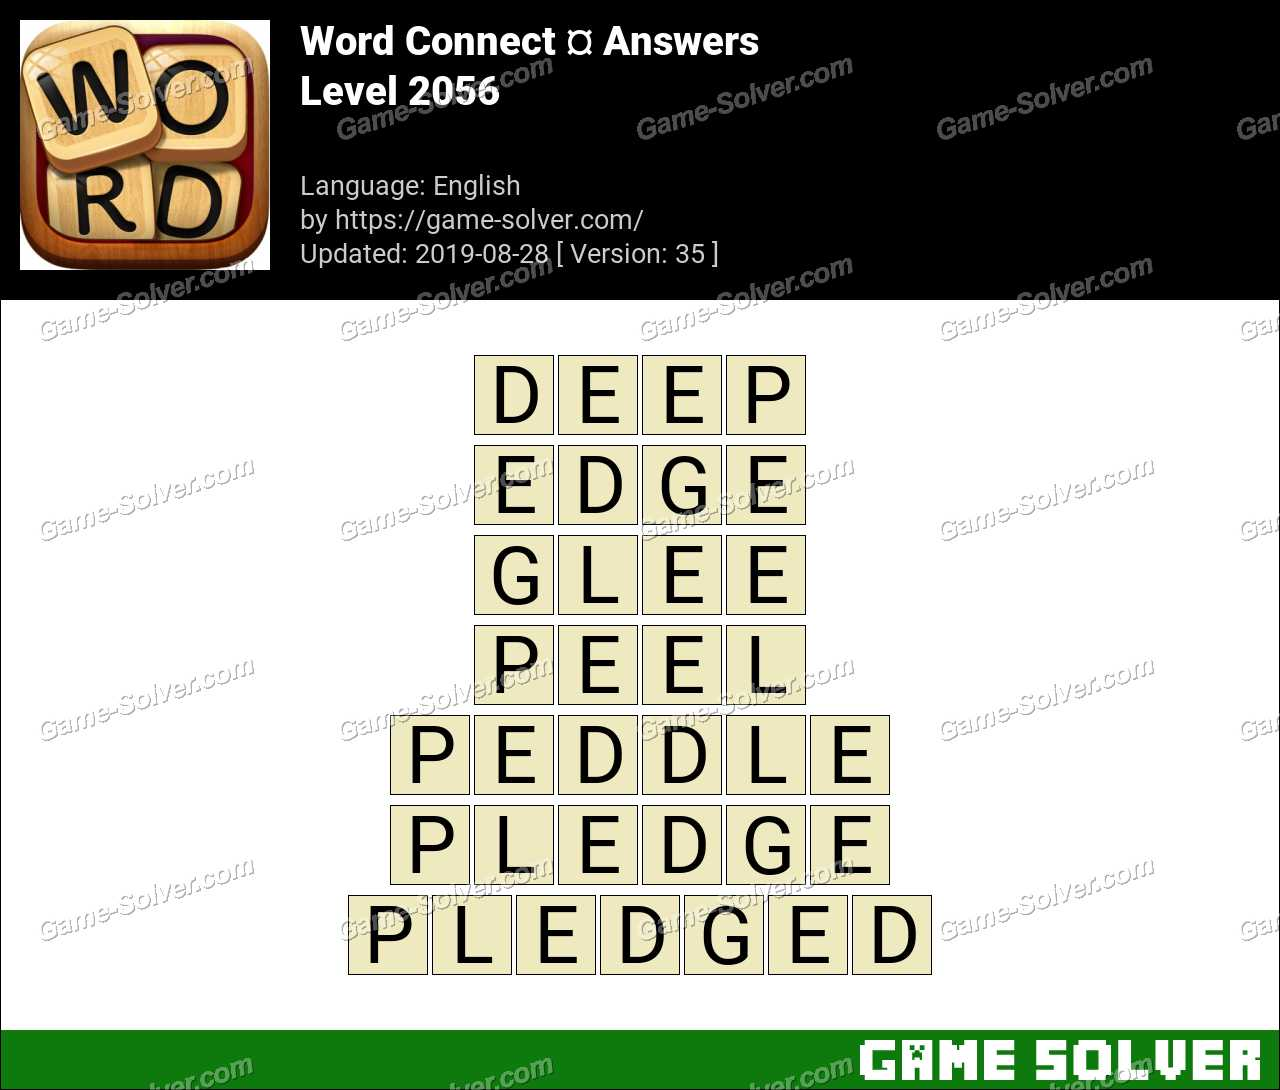 Word Connect Level 2056 Answers